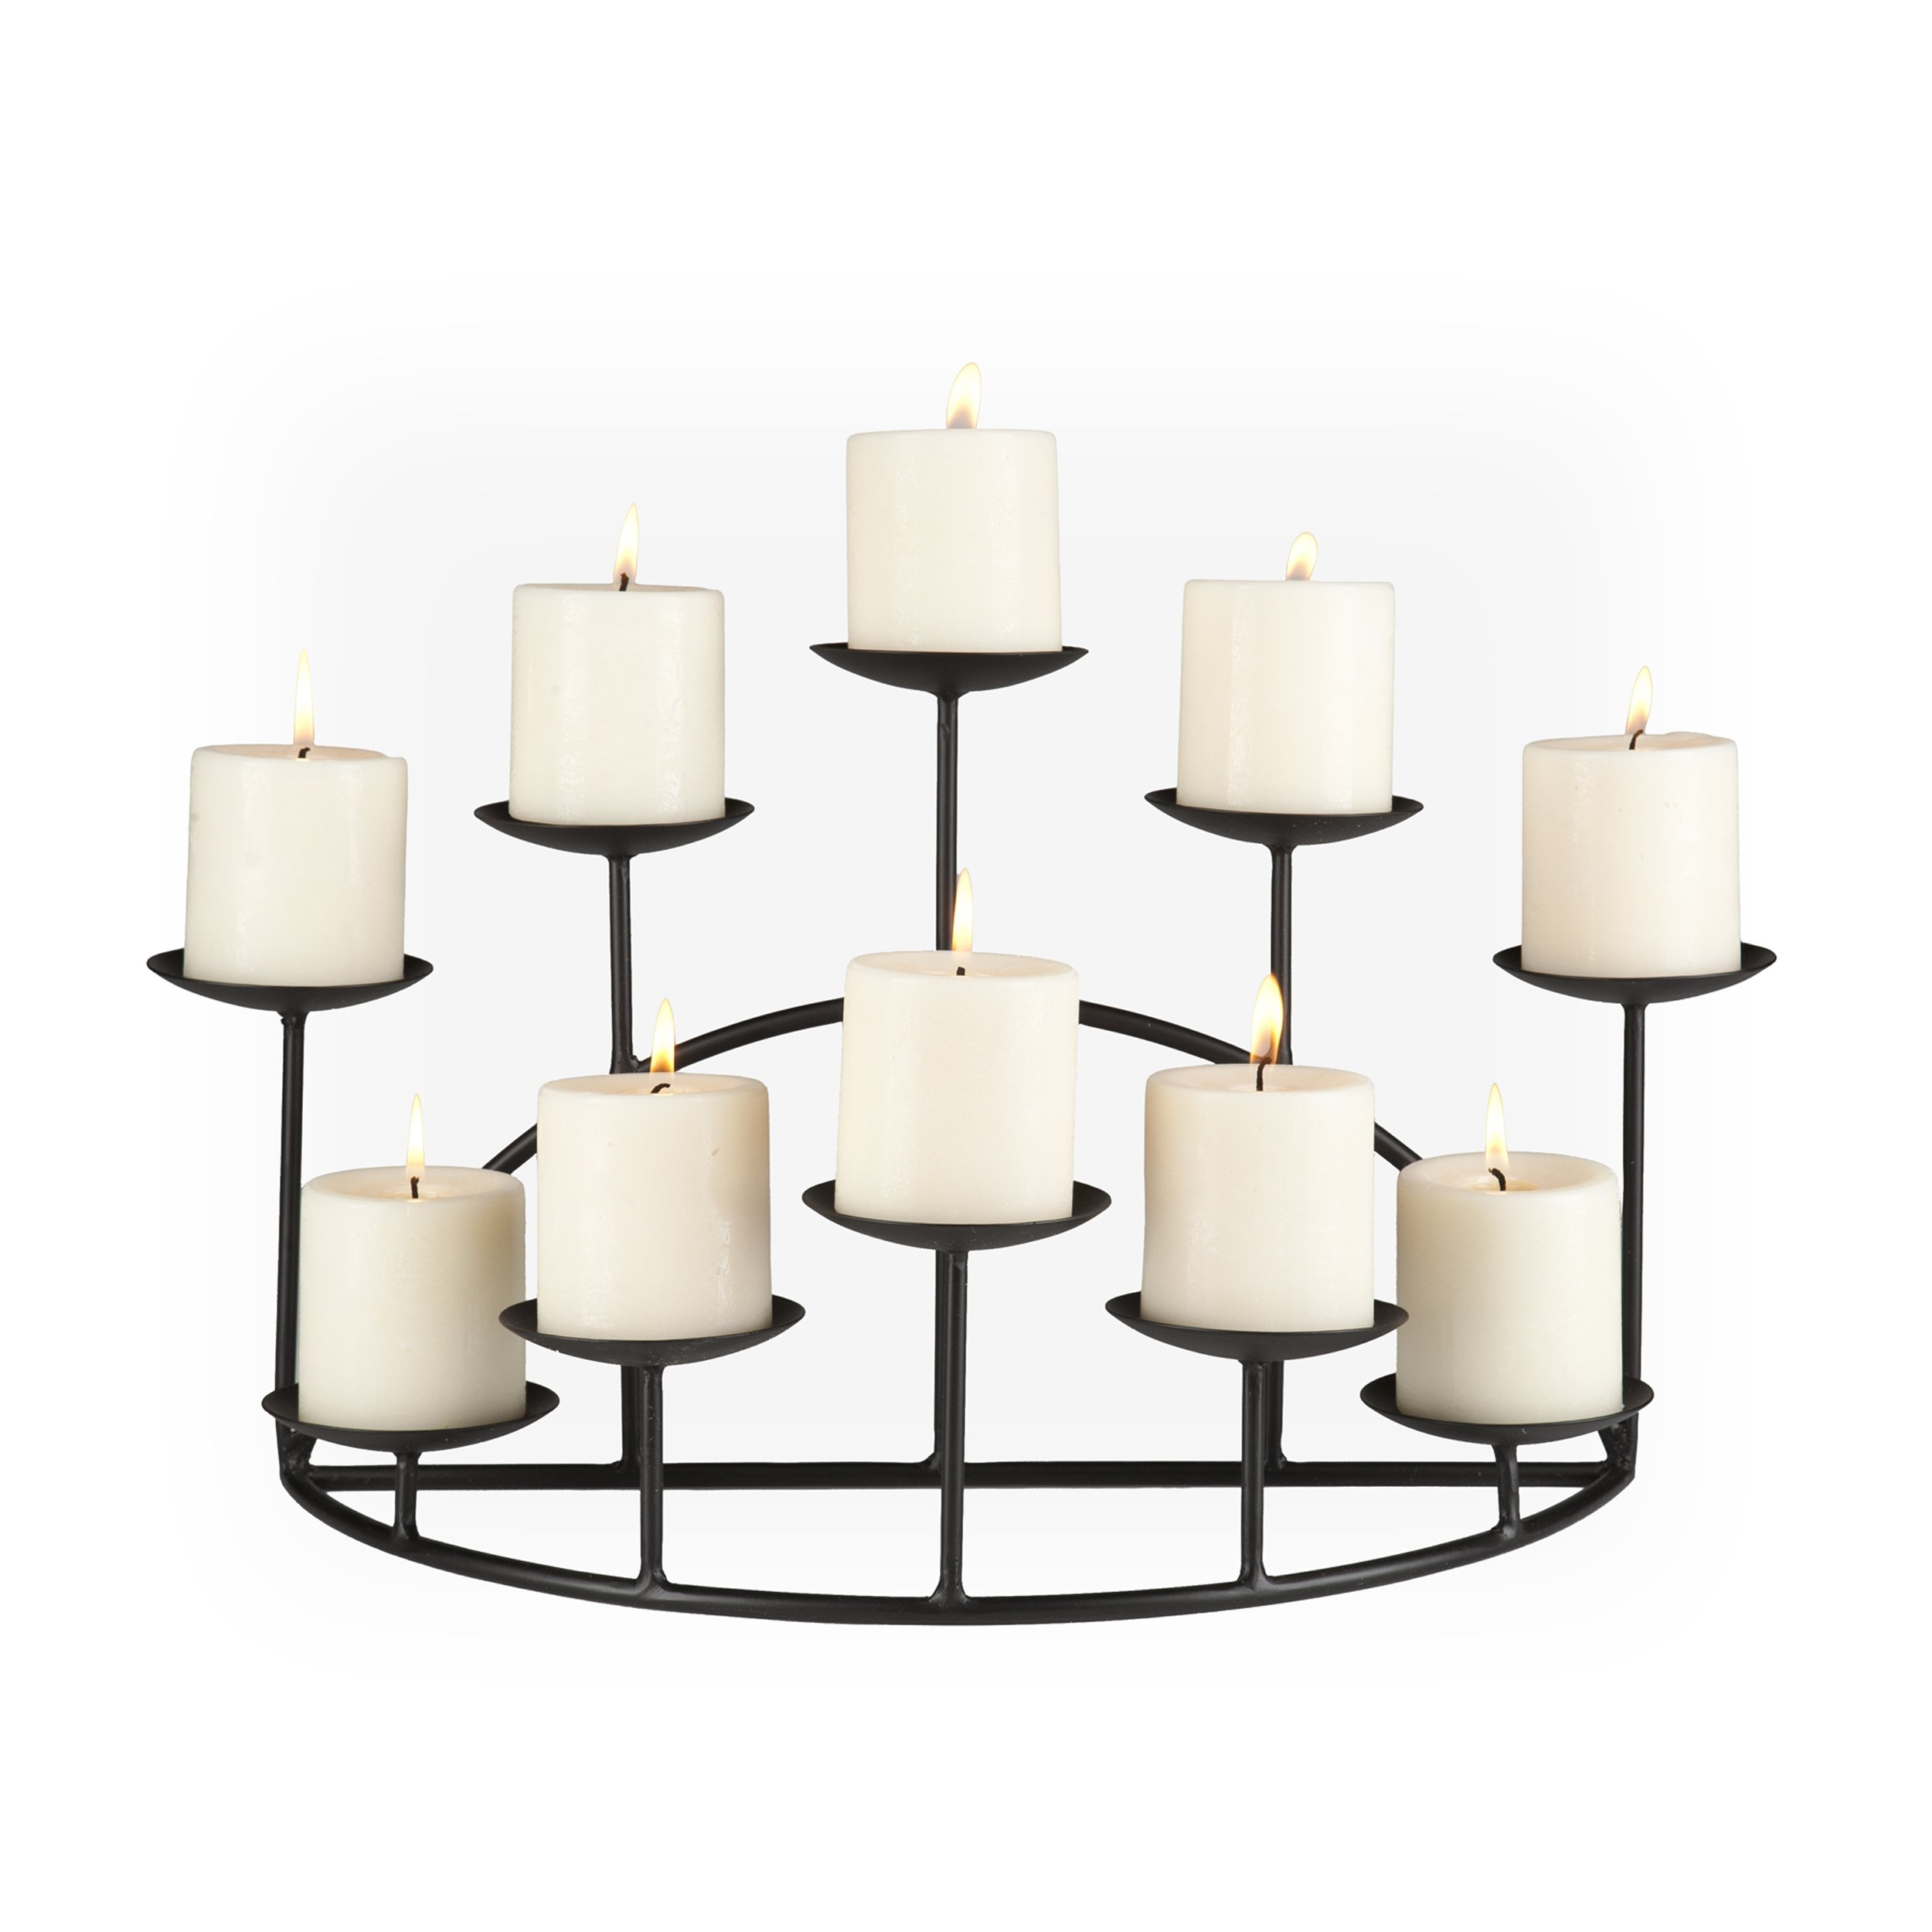 Candelabra 10 Candle Holder Centerpiece Metal Black Vintage